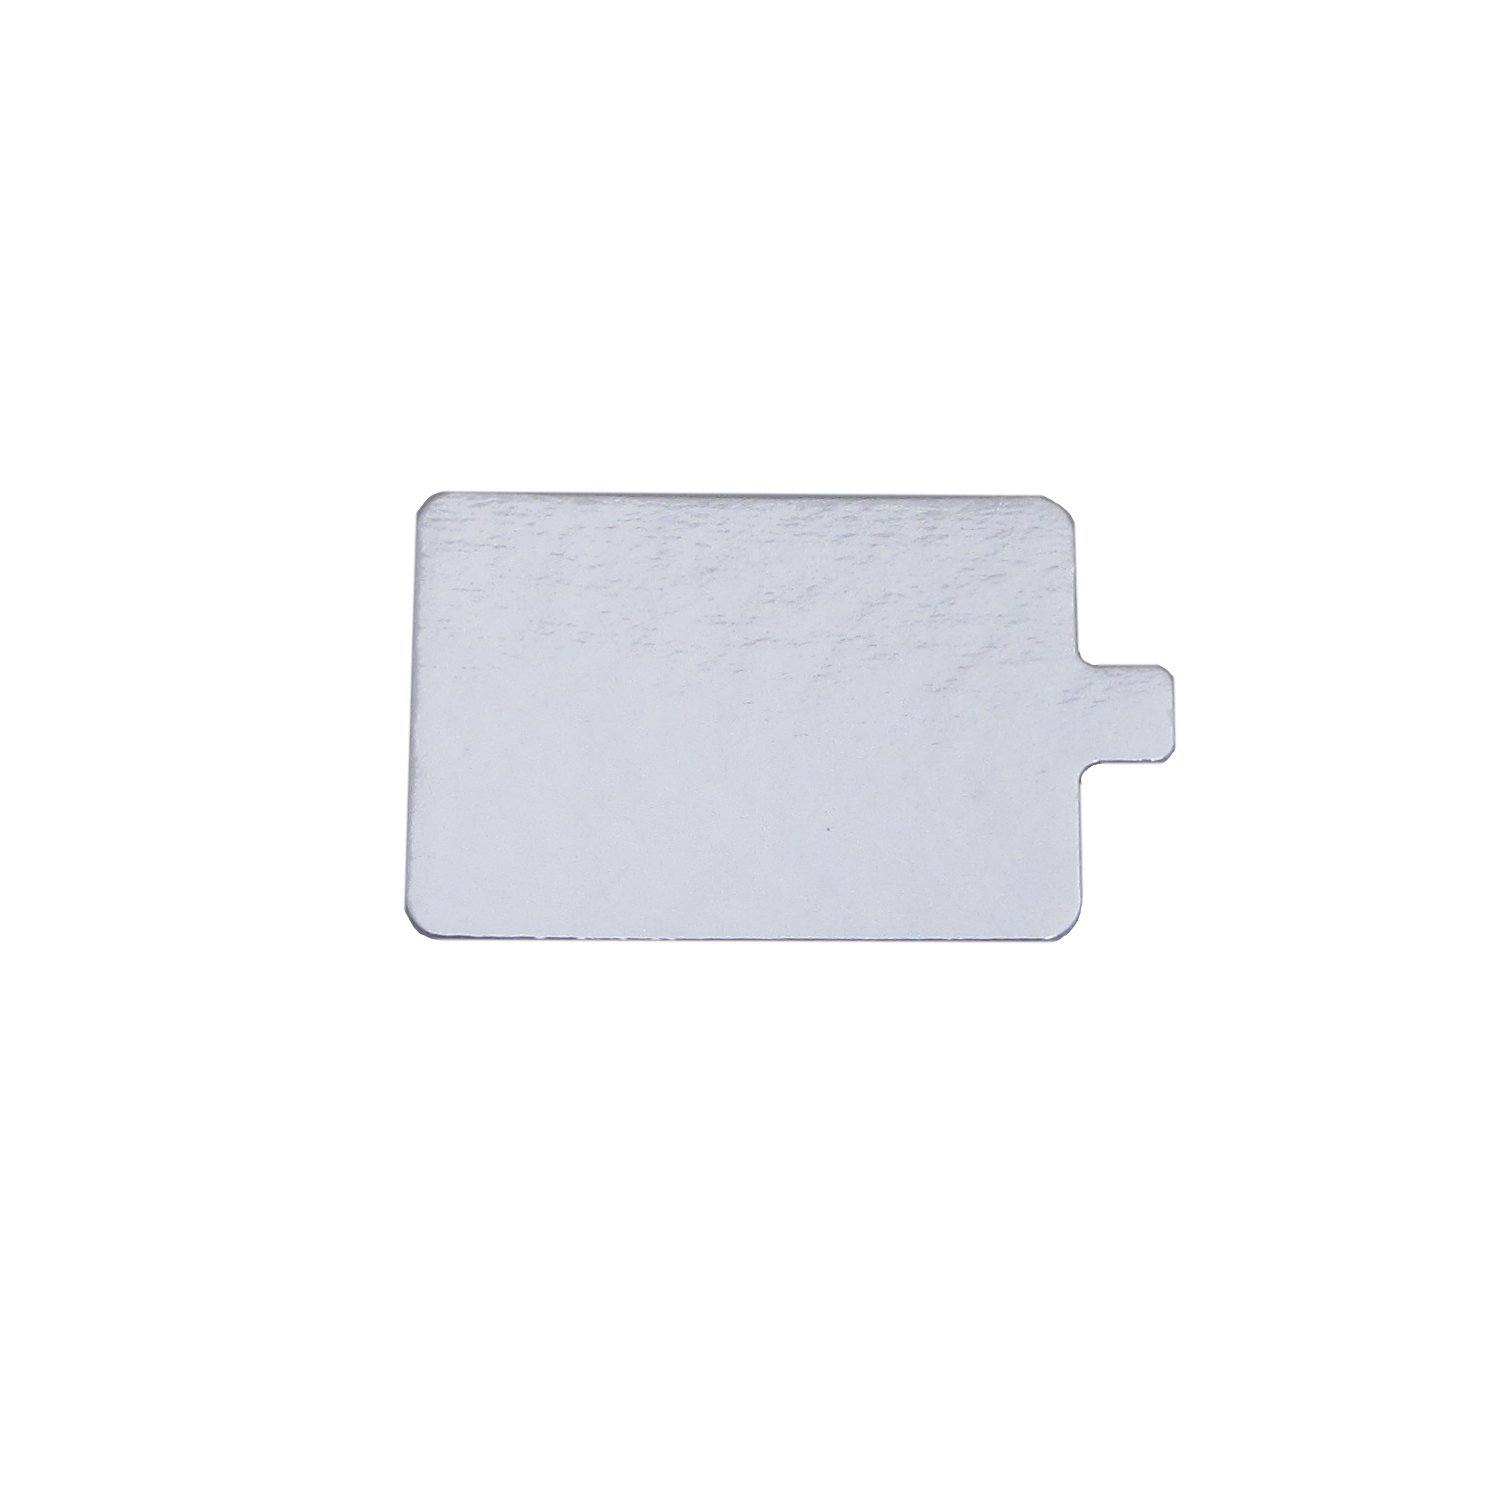 25, 2.75 x 4 Rectangular Silver Mono-Portion Pastry Board with Tab